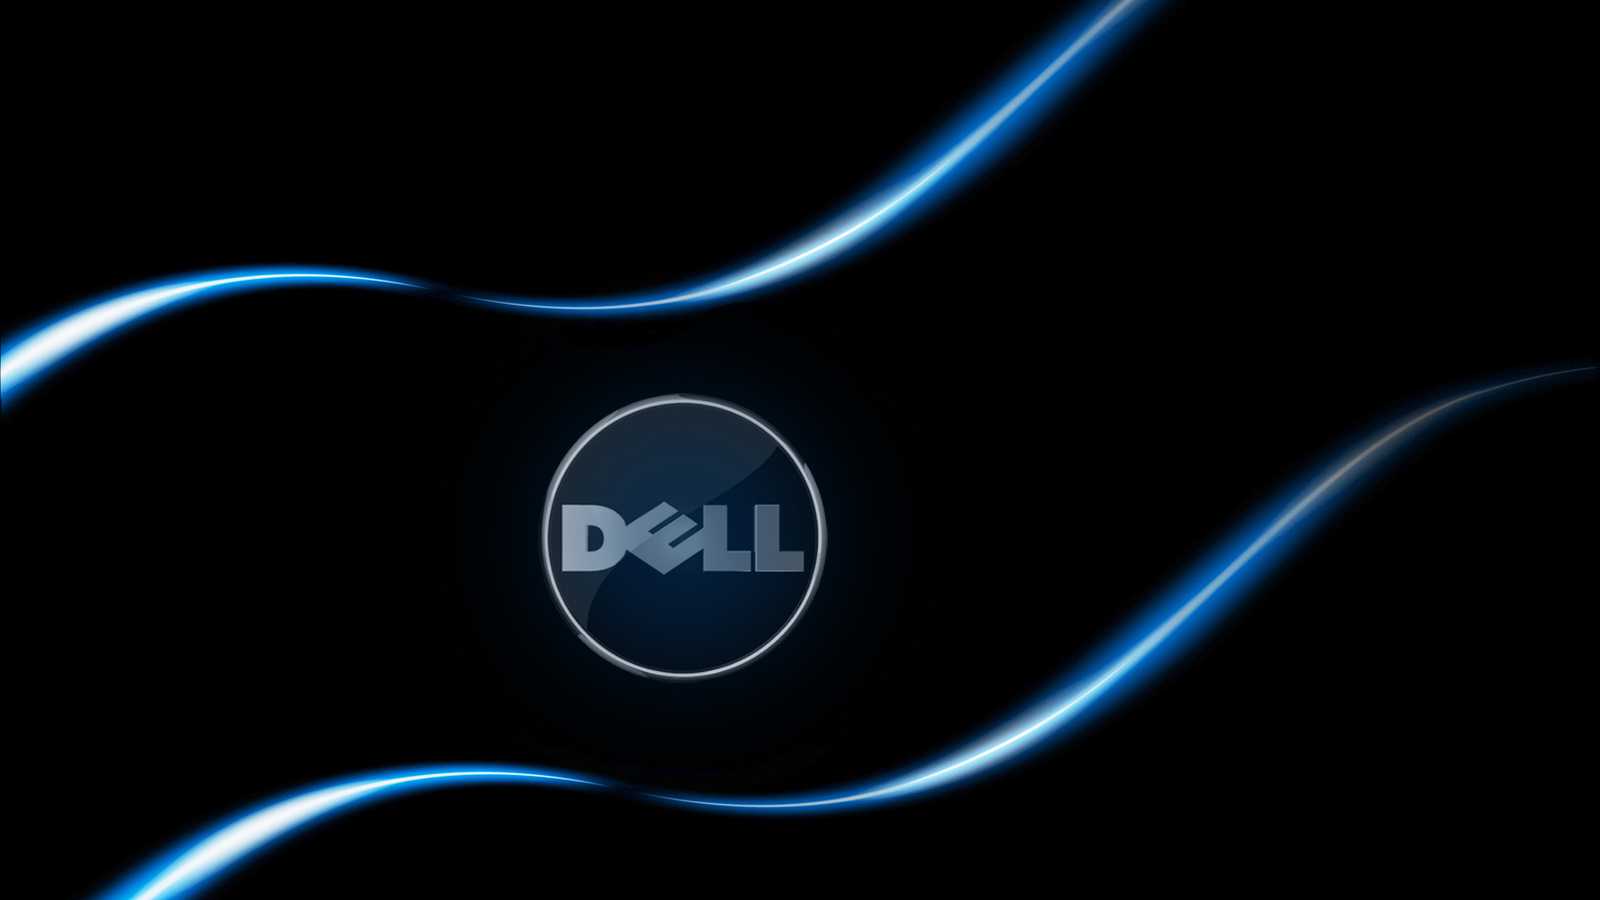 Free Dell Wallpaper